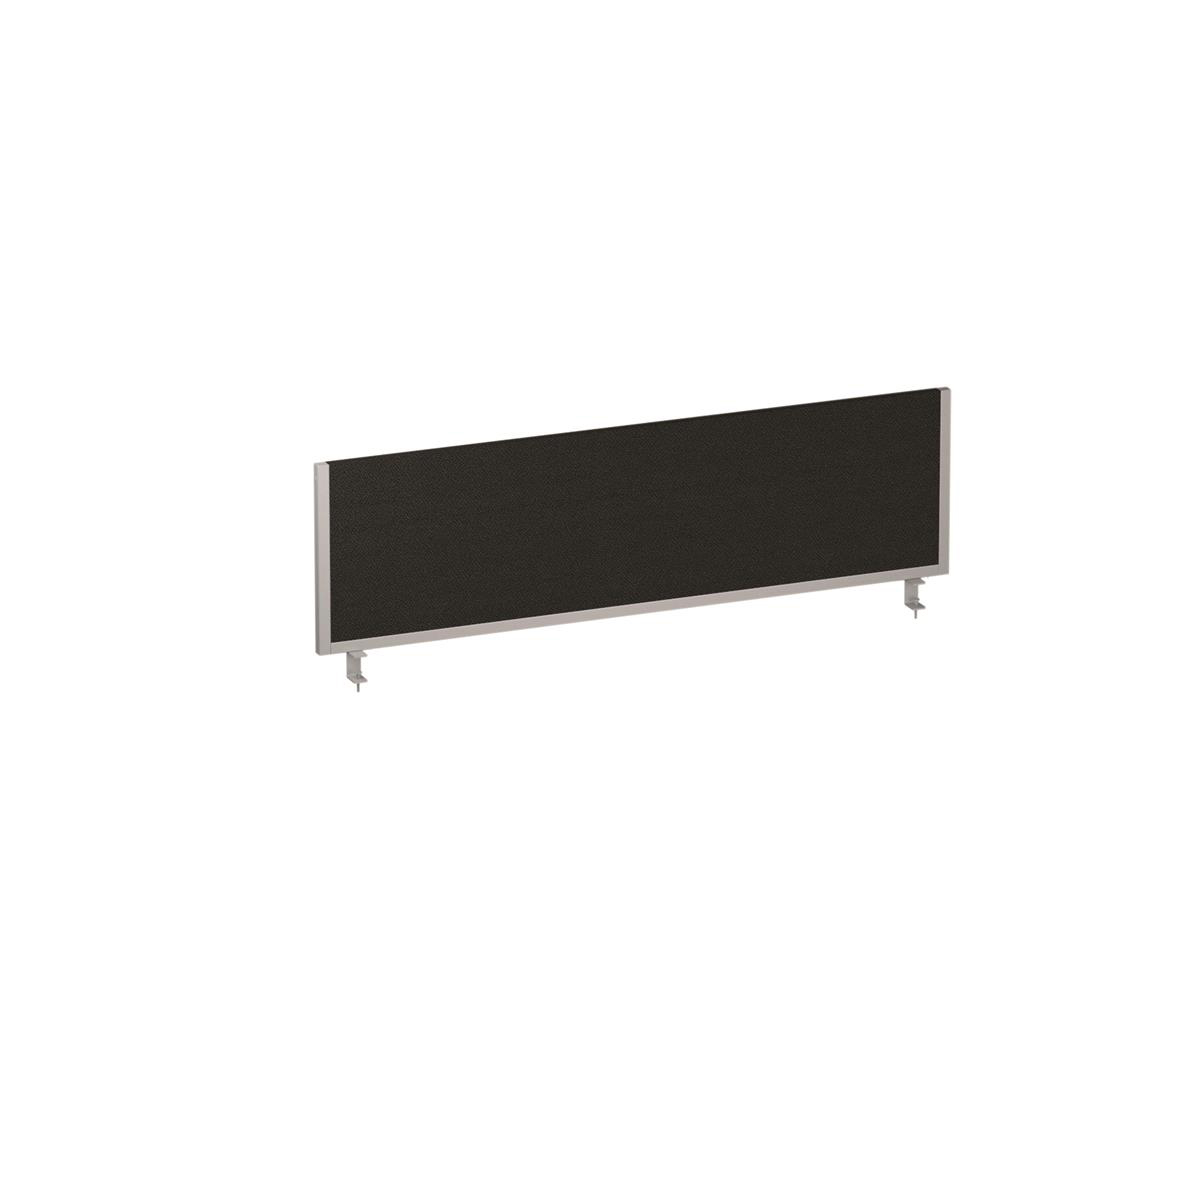 Trexus Rectangular Screens 1400mm Black/Silver